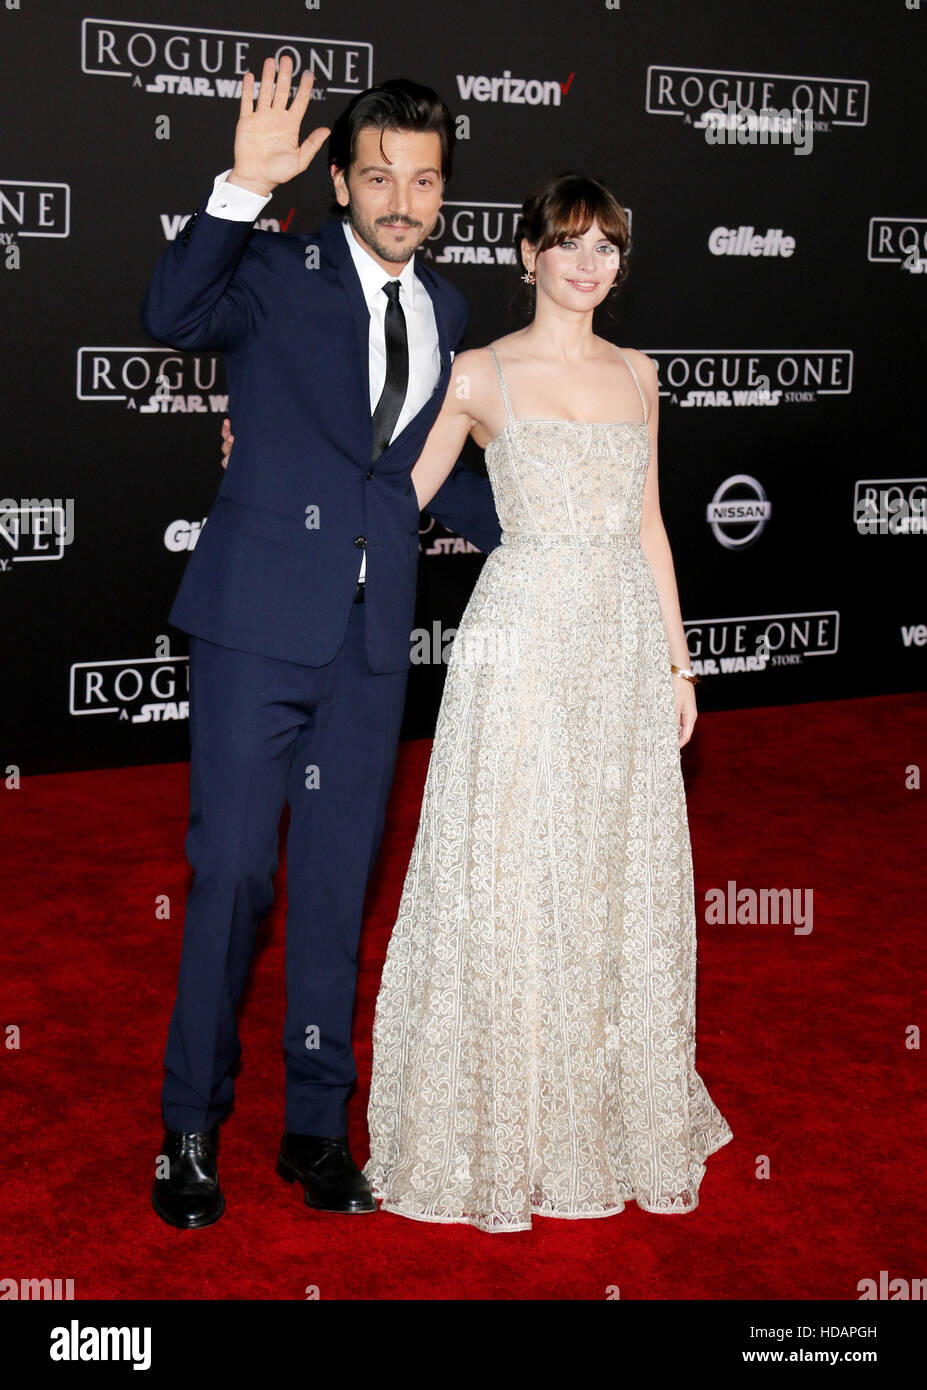 "Hollywood, California, USA. 10 dic, 2016. Felicity Jones y Diego Luna en el estreno mundial de ""Rogue: Una Imagen De Stock"